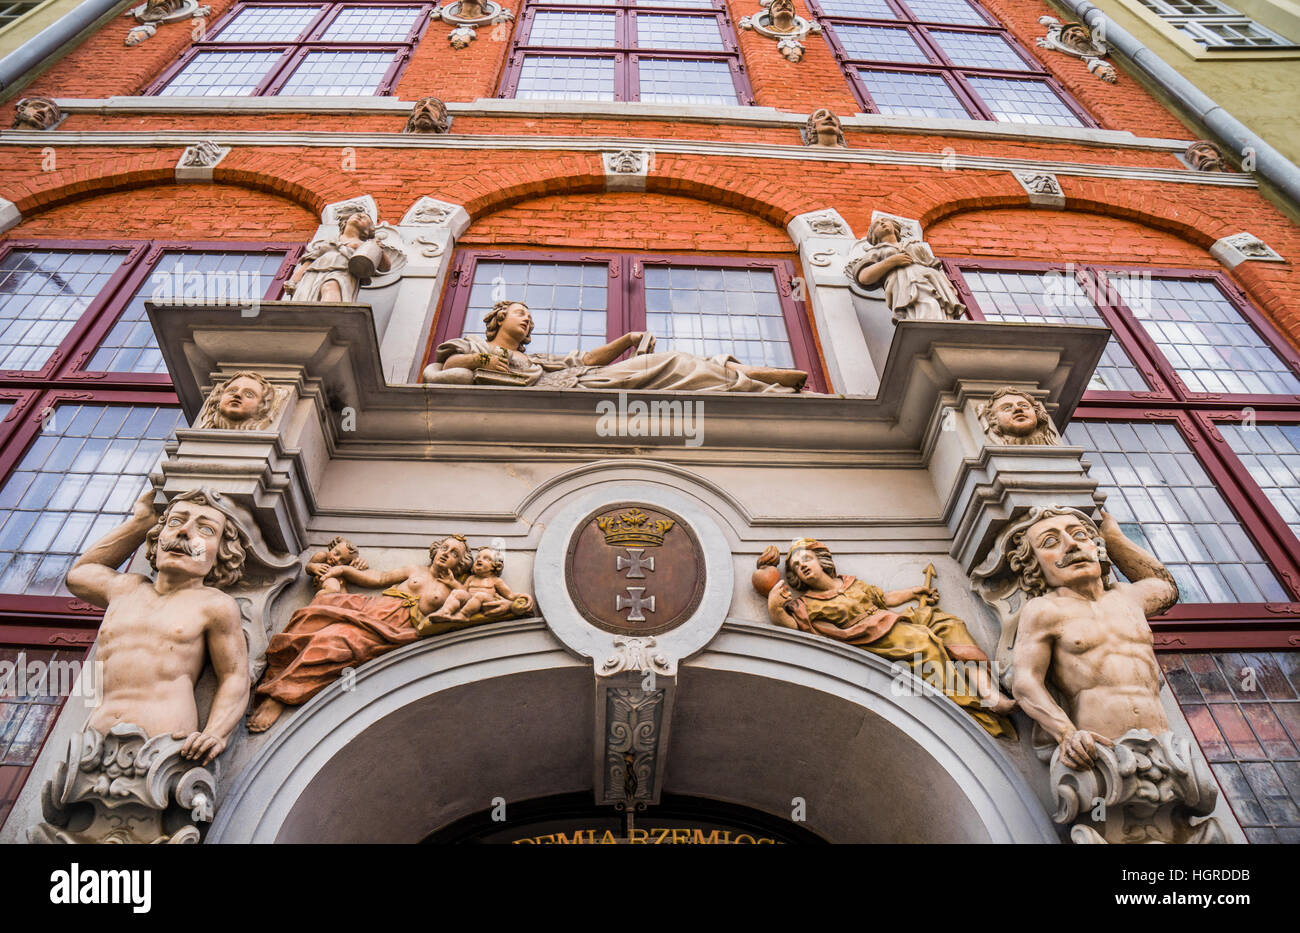 Poland, Pomerania, Gdansk (Danzig), the floridly decorated facade of the patrician house (Jopengasse 1/2), Ulica - Stock Image